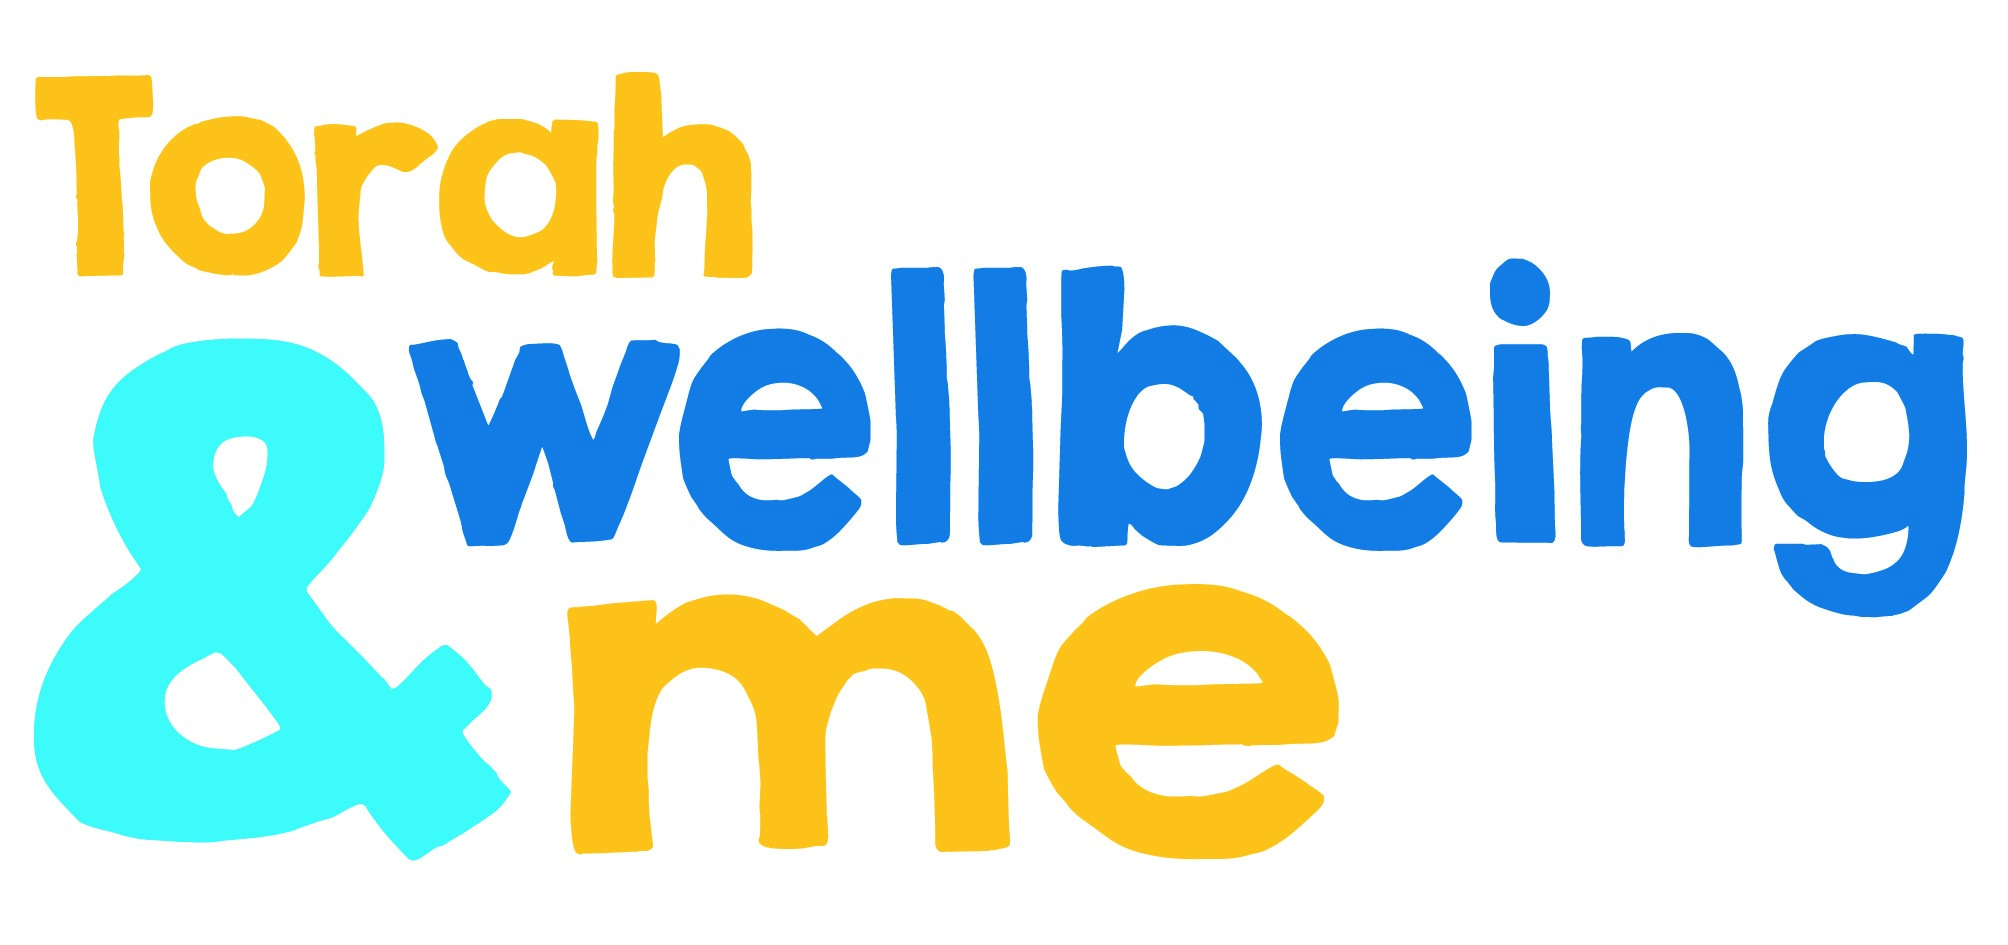 Torah_welbeing_and_me_logo.jpg